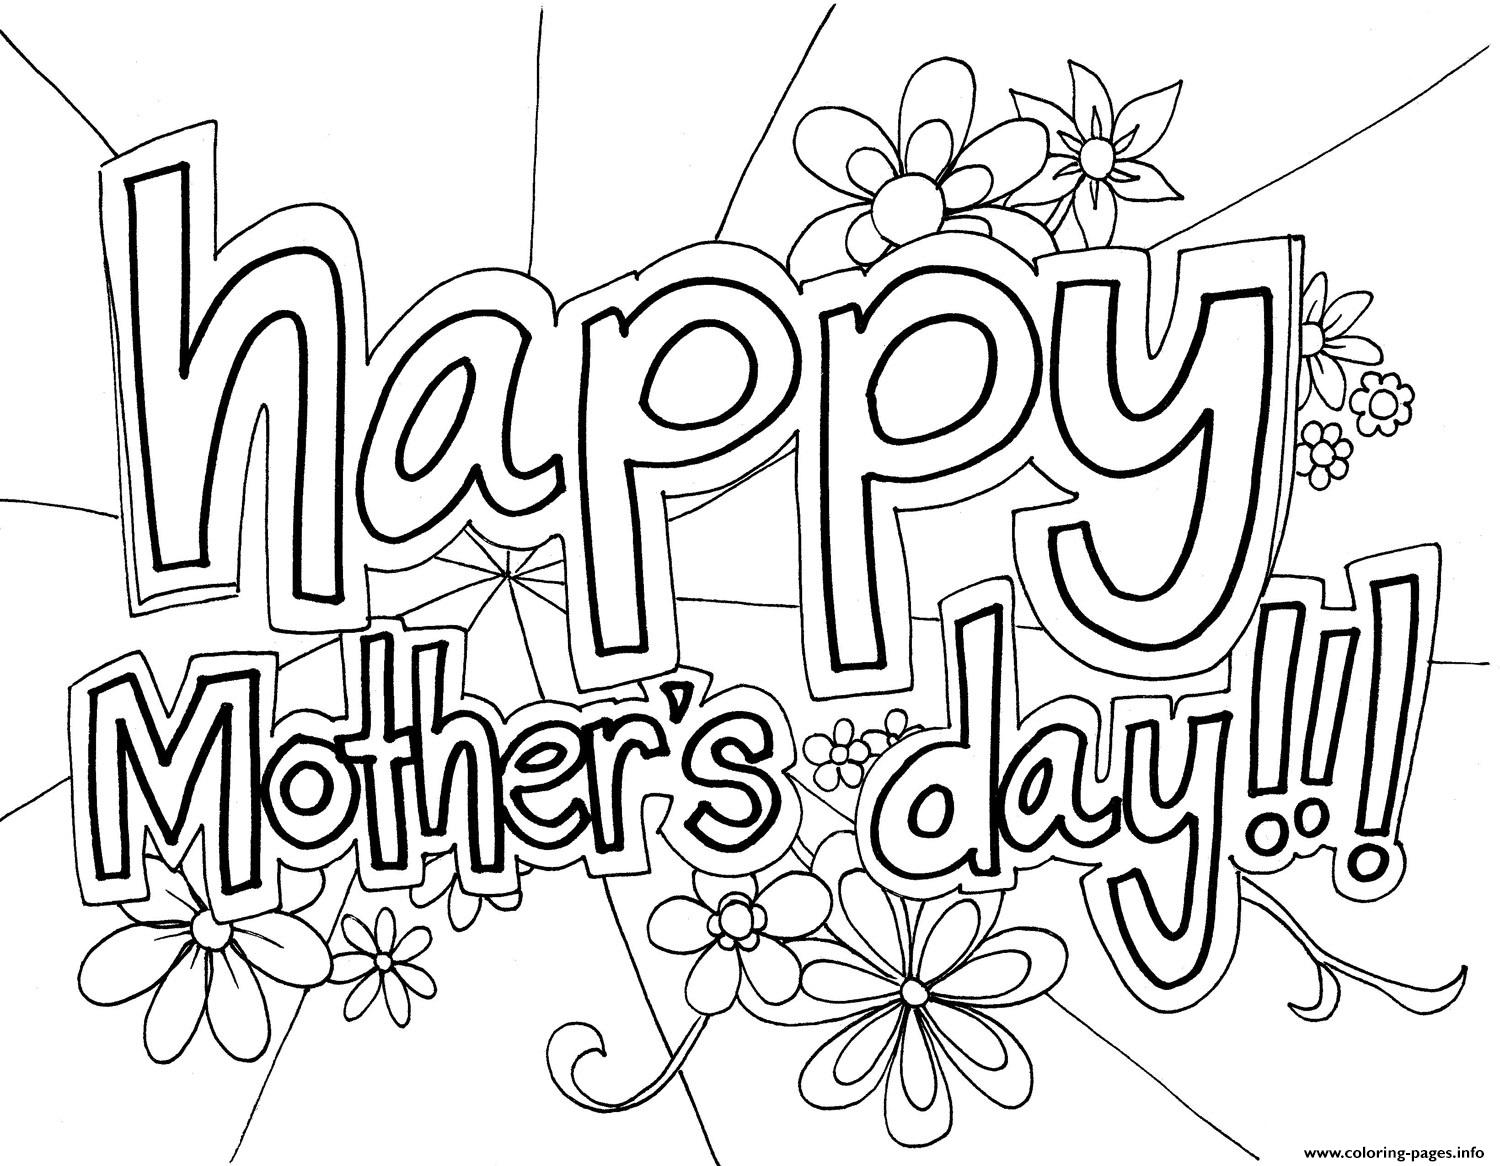 free happy mothers day coloring pages - Free Mothers Day Coloring Pages